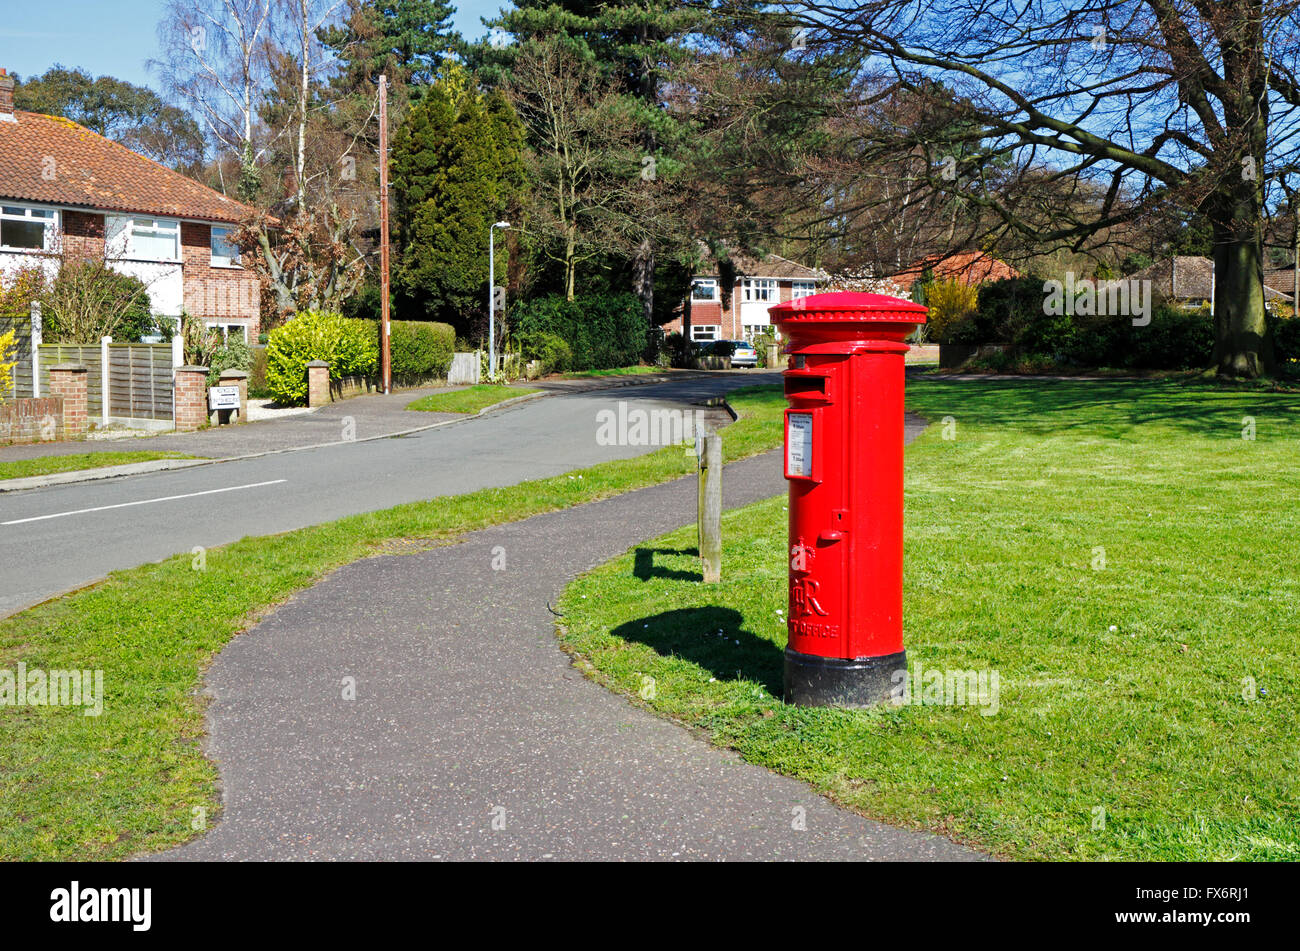 A view of a red post box on a street corner in Hellesdon, Norfolk, England, United Kingdom. - Stock Image